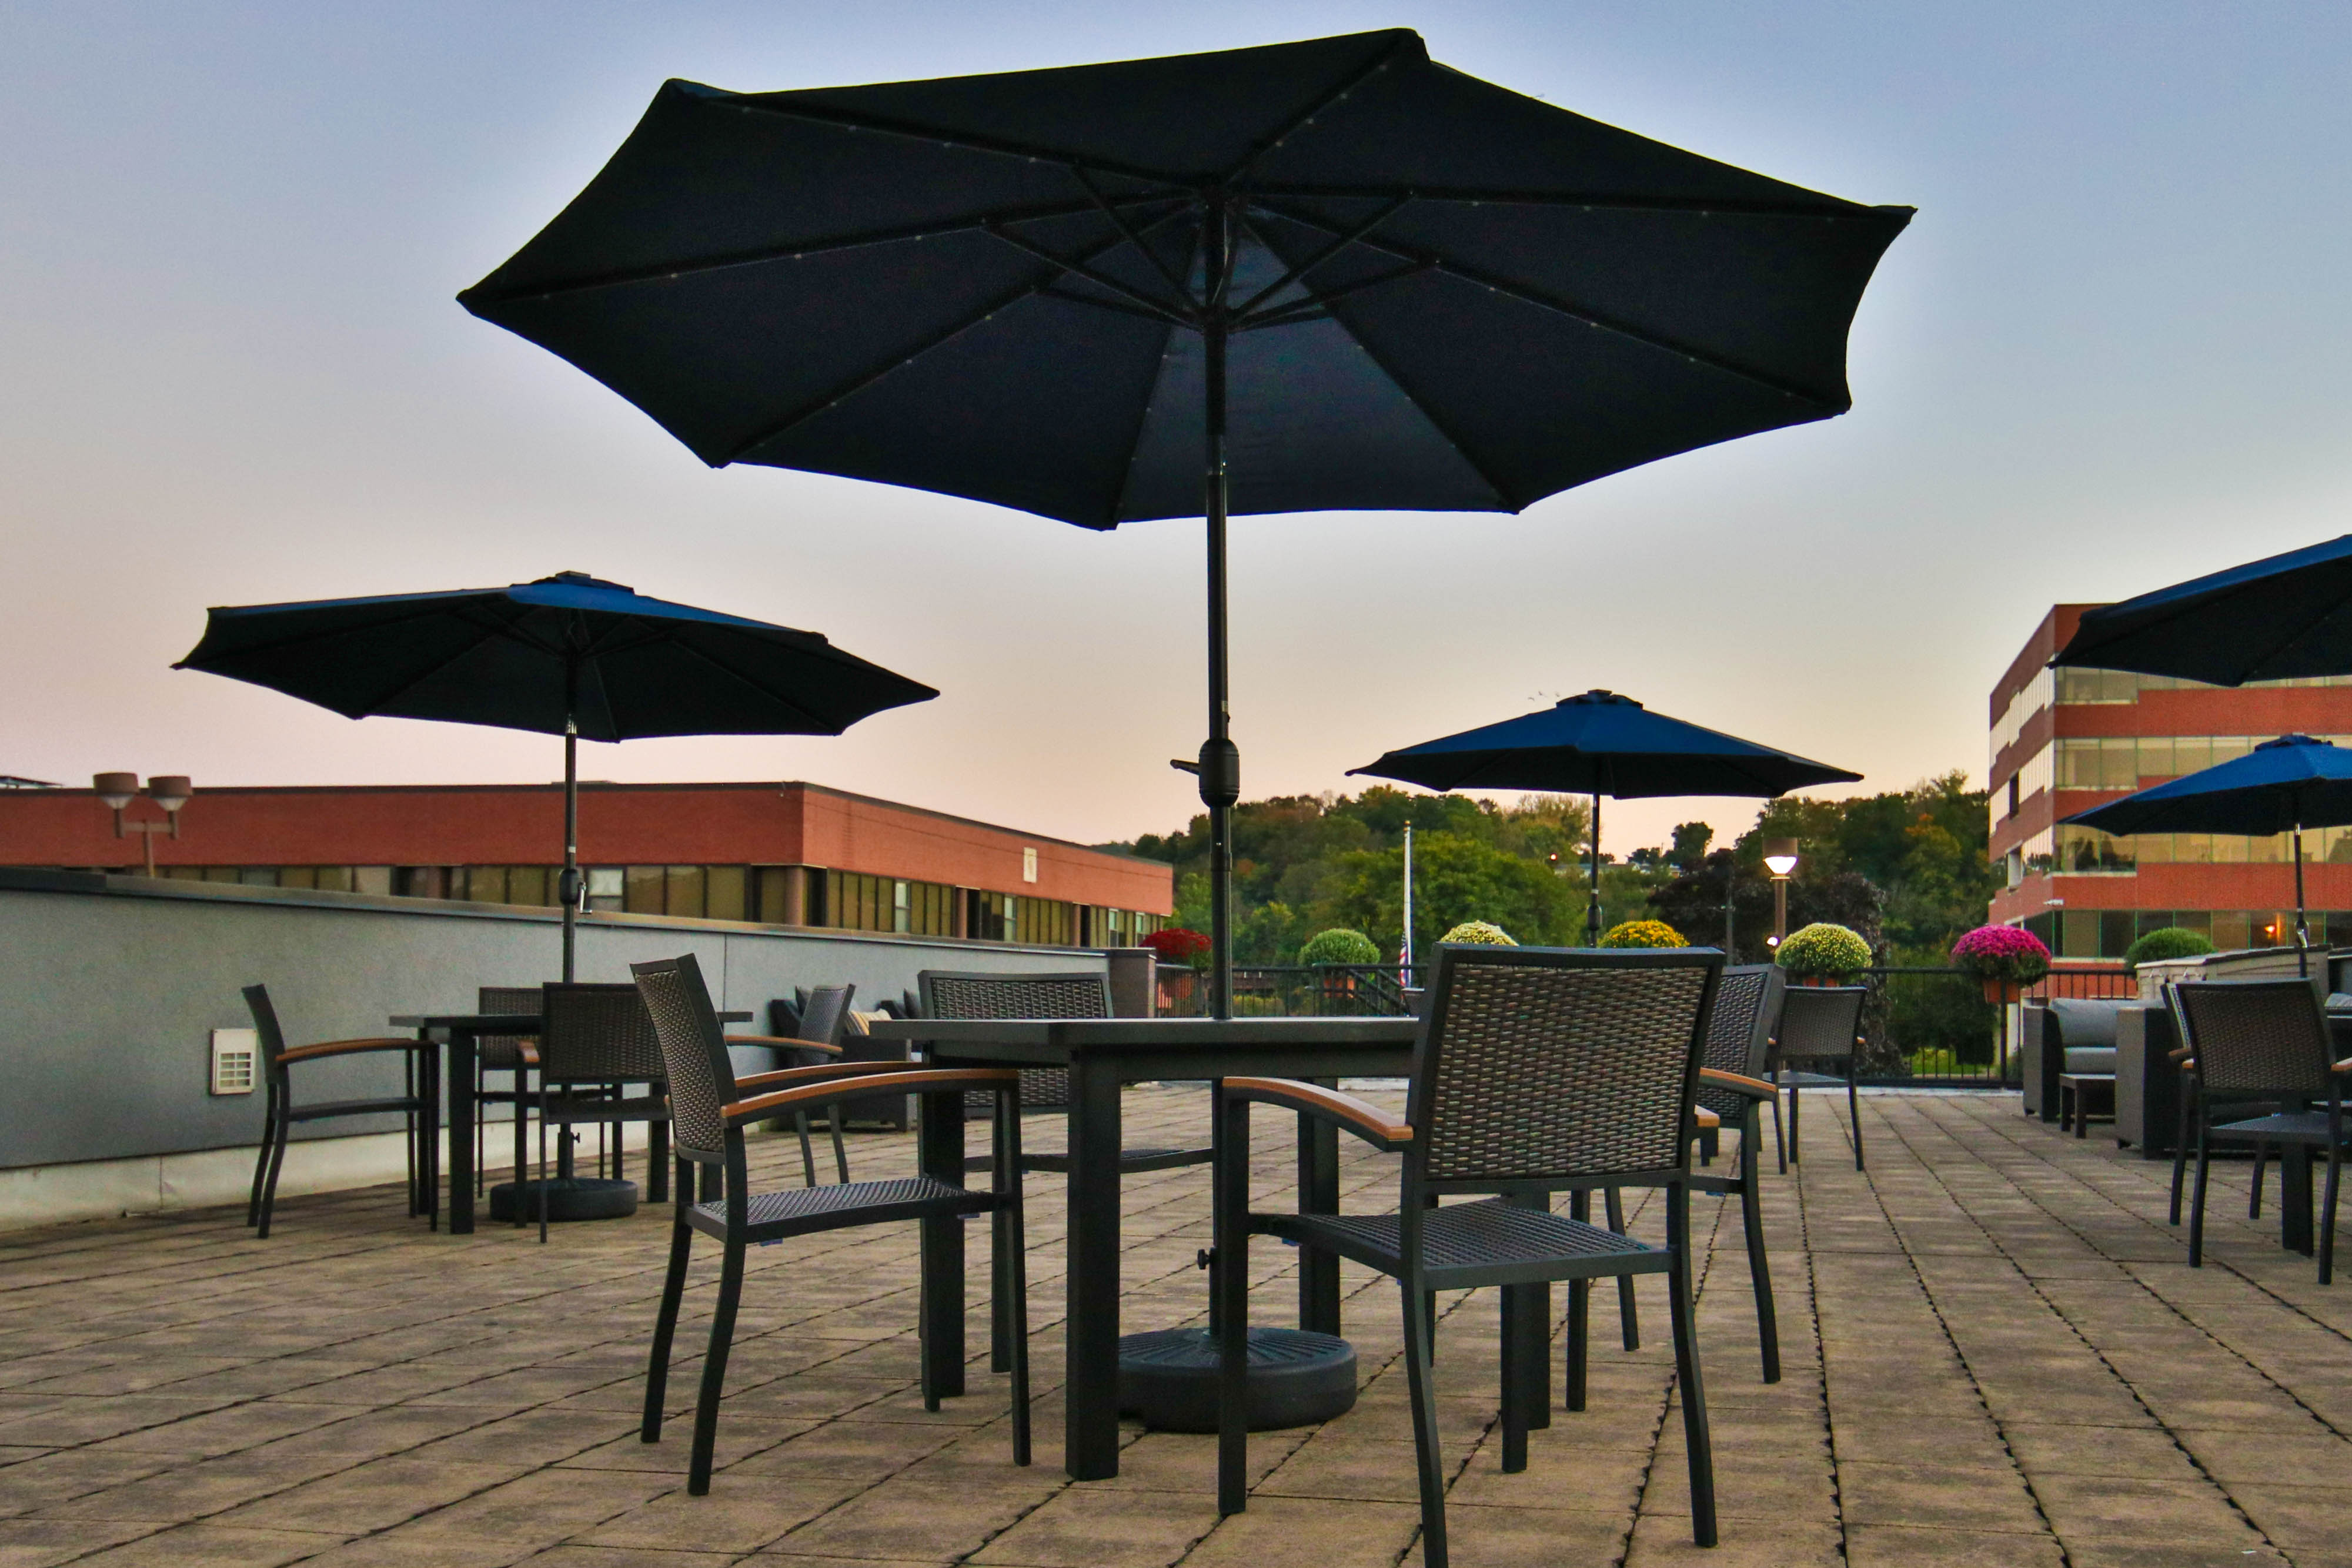 outdoor terrace with tables with umbrellas, and chairs